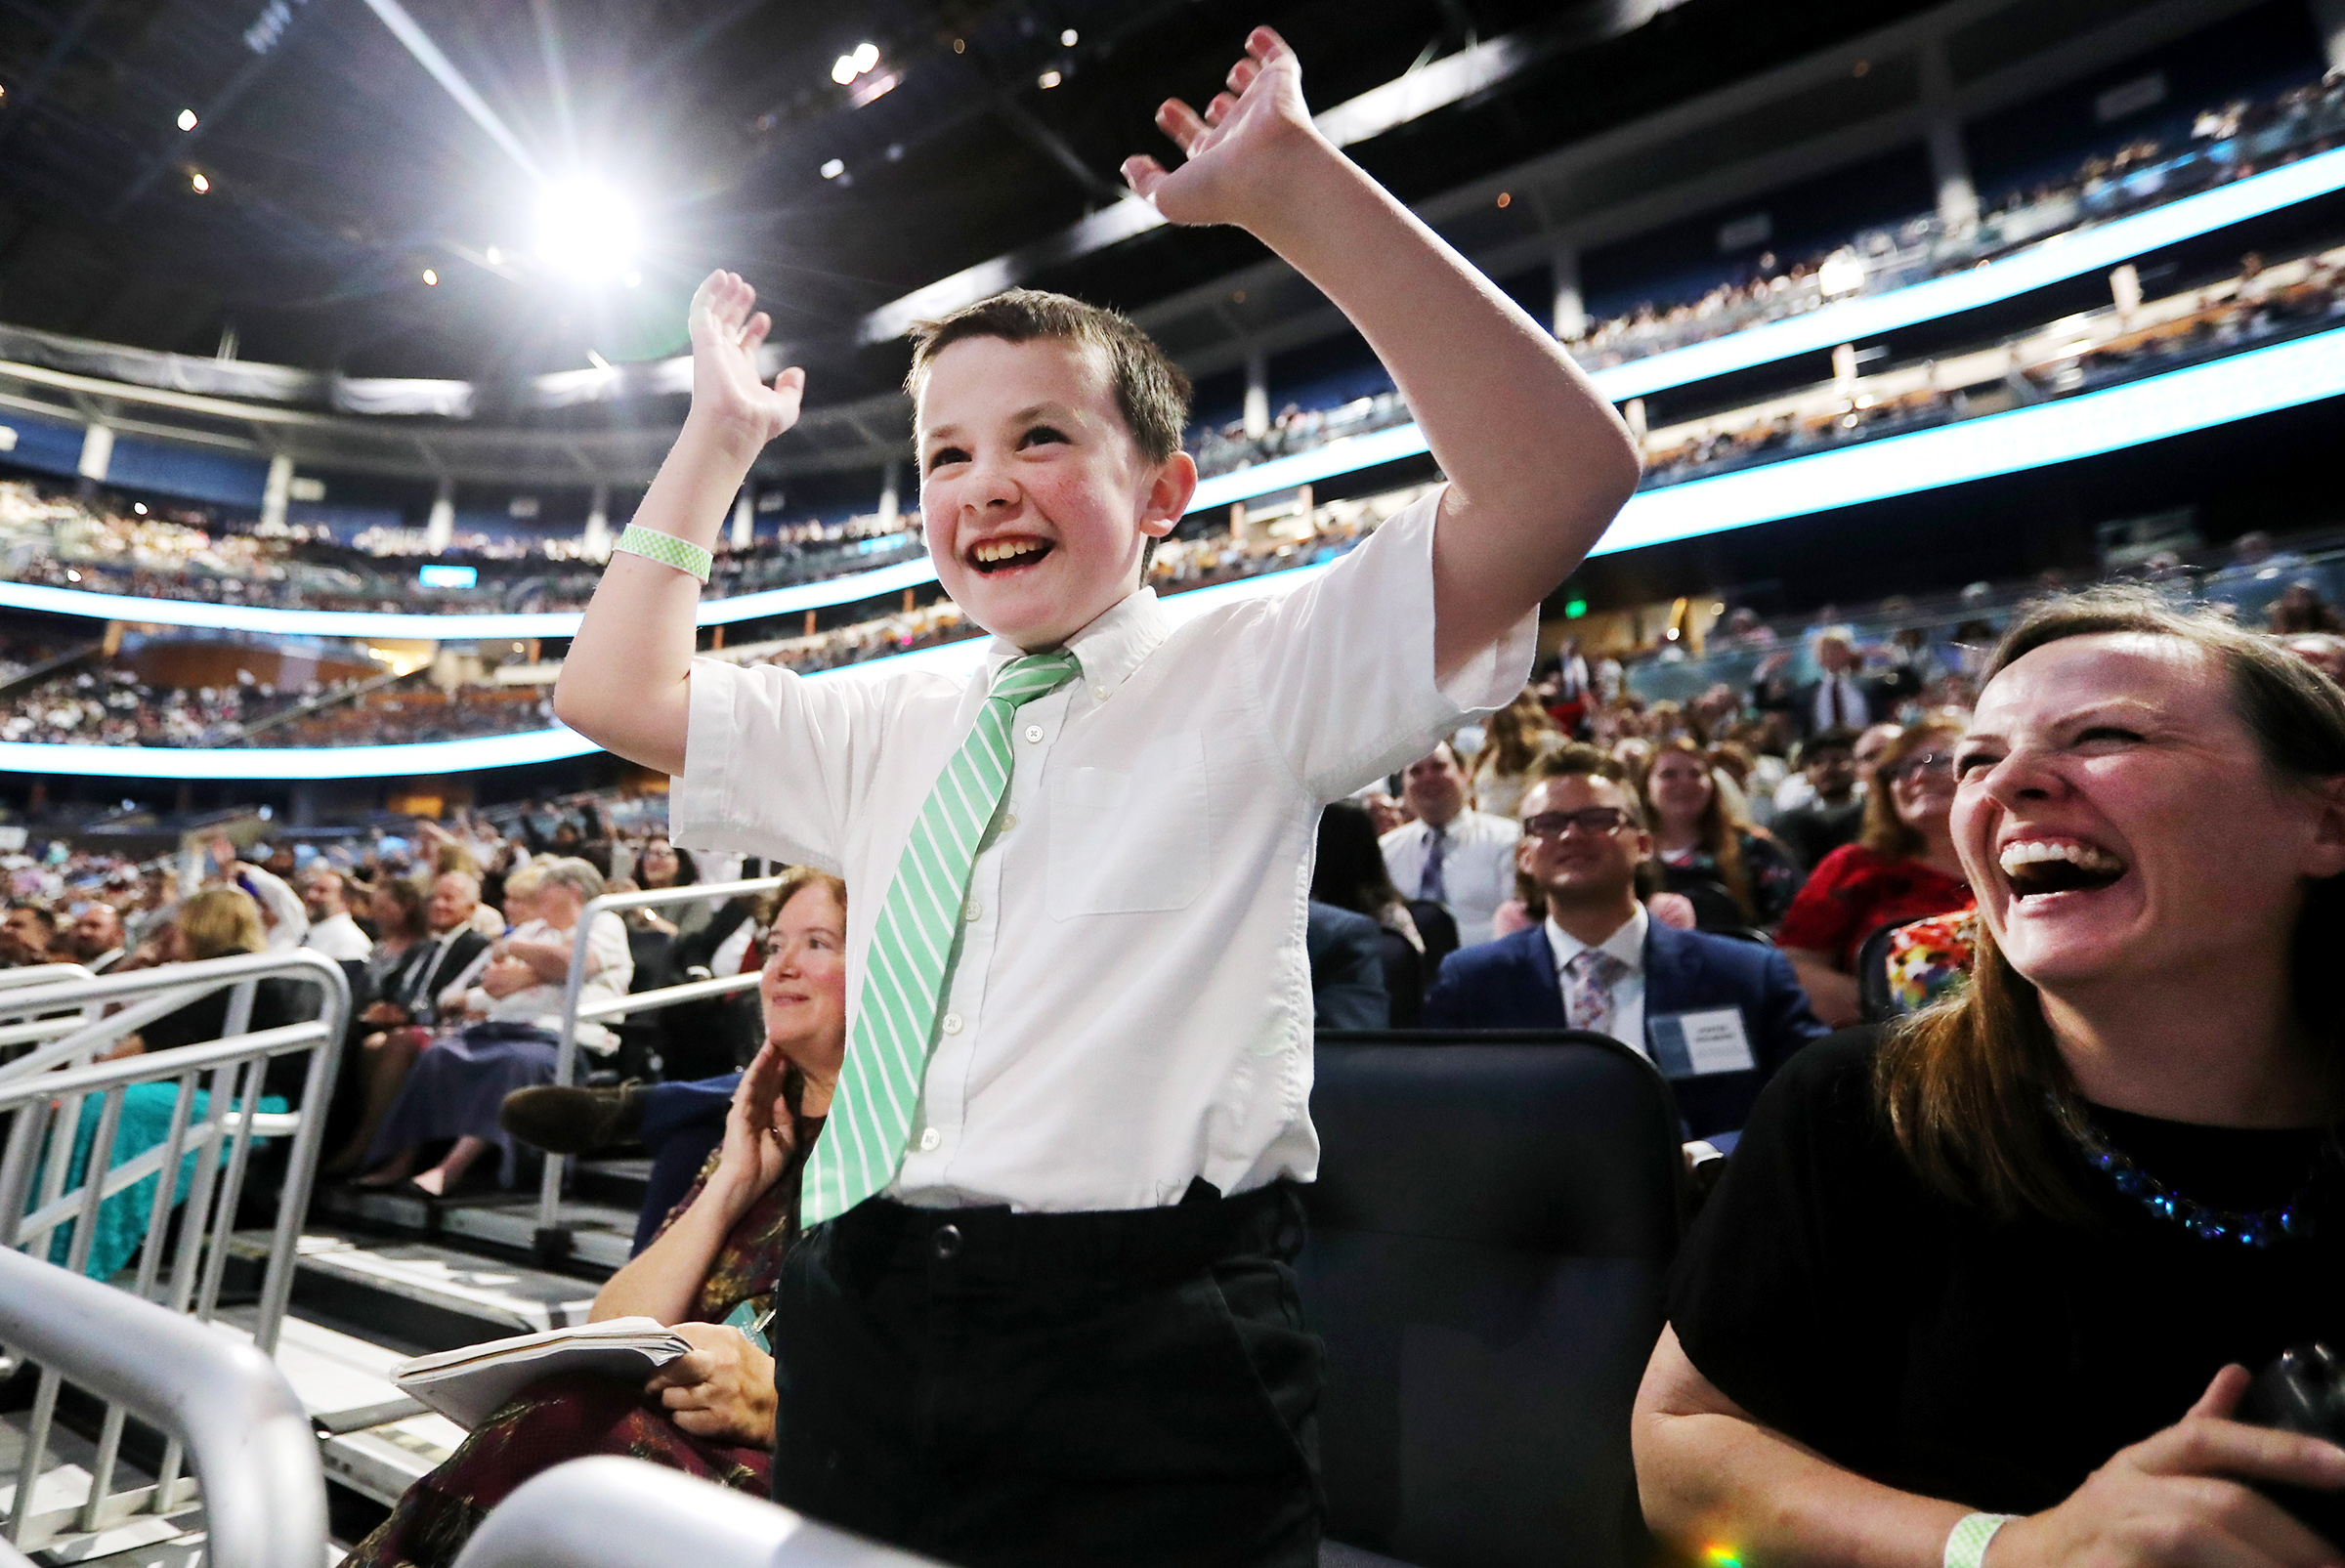 Ethan Meyers waves his arms and his mom, Sarah Meyers, laughs as they listen to President Russell M. Nelson during the devotional at the Amway Center in Orlando, Florida, on Sunday, June 9, 2019.